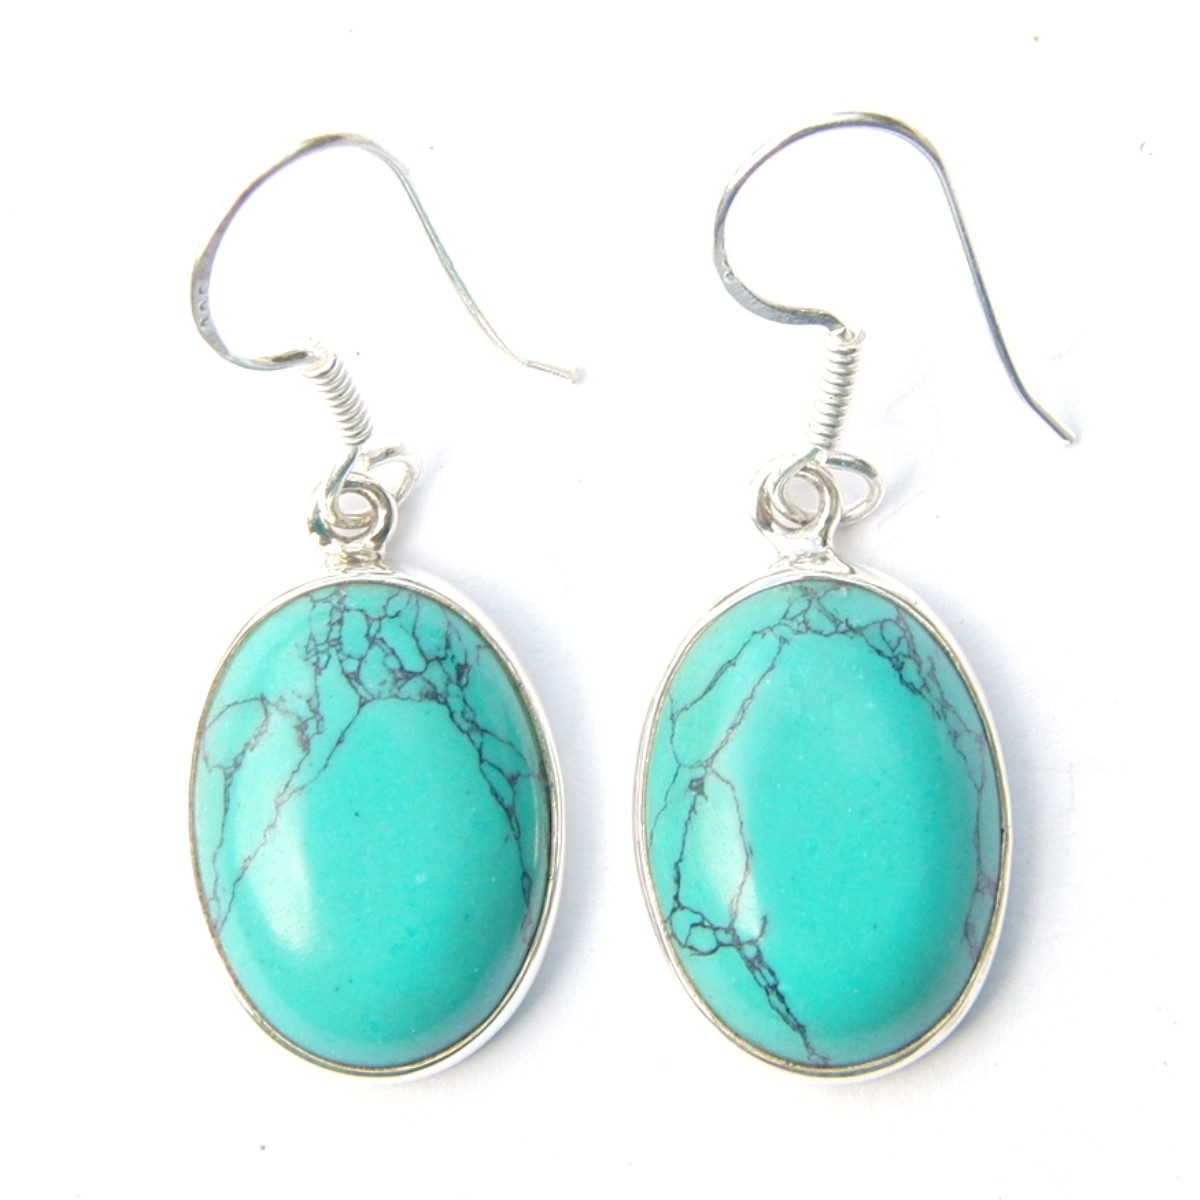 Turquoise Large Cab Earrings